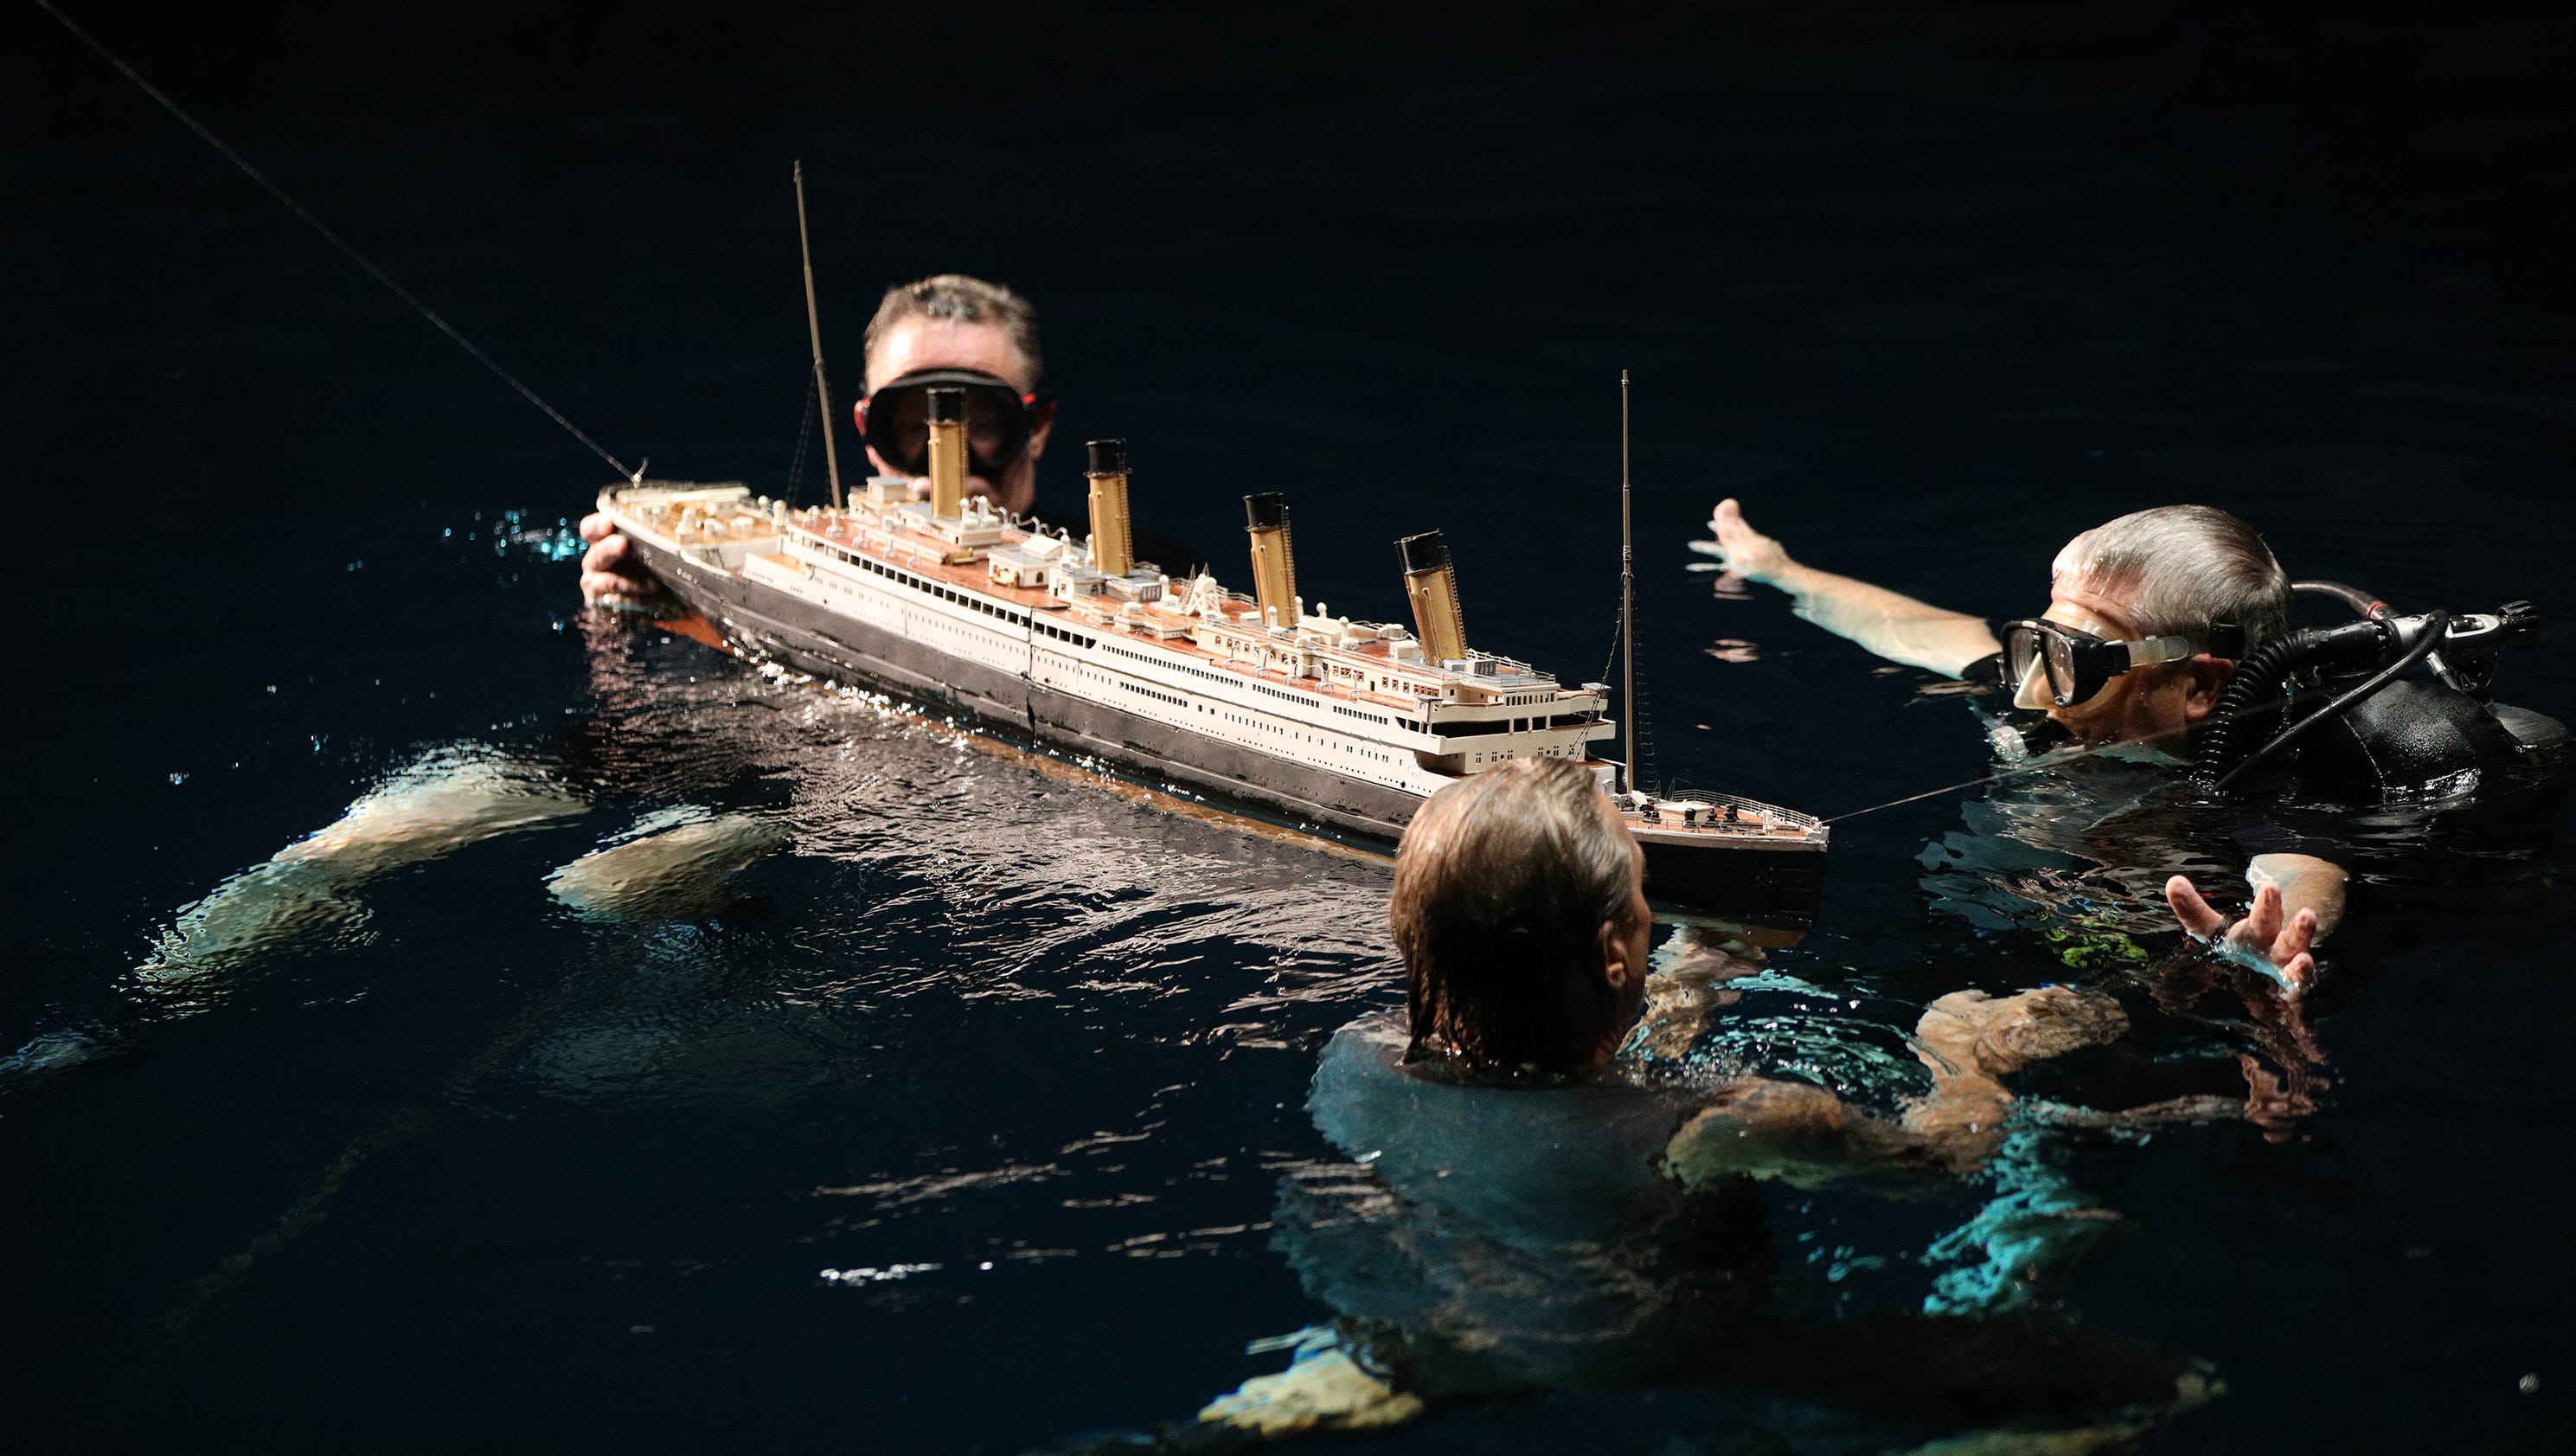 39 titanic 20 years later 39 what james cameron got right - Did the titanic have swimming pools ...